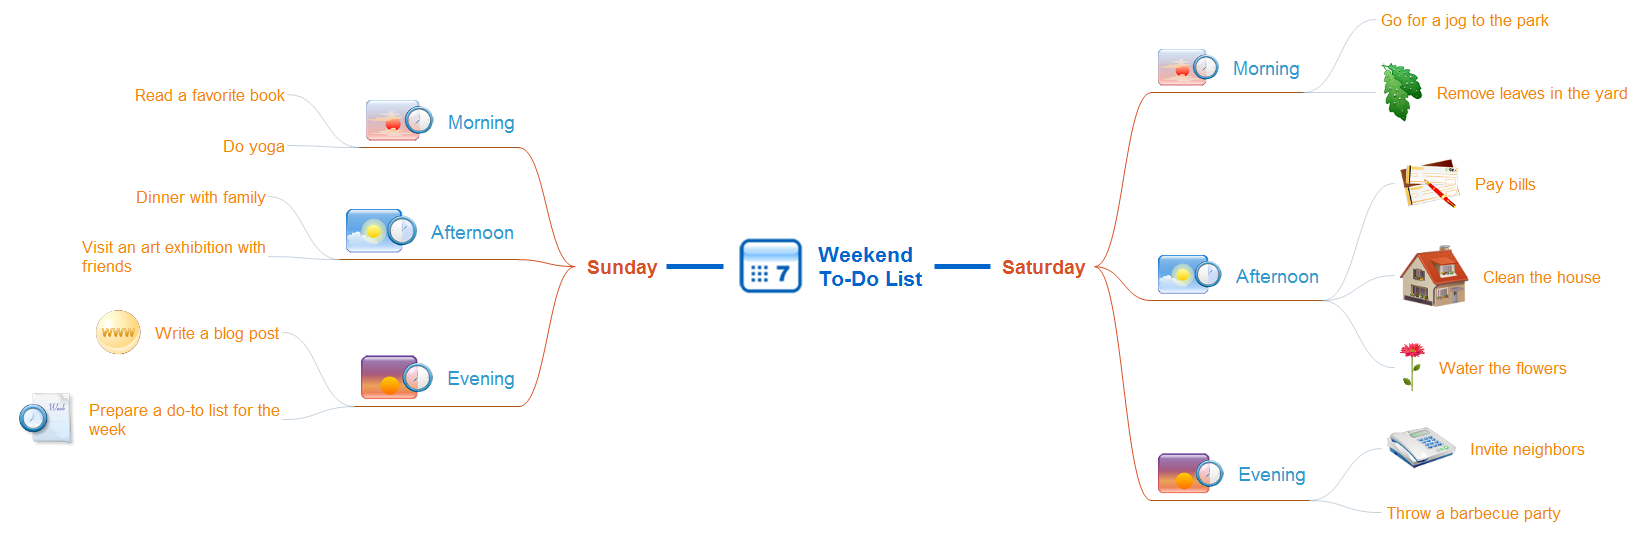 Weekend to-do list mindmap